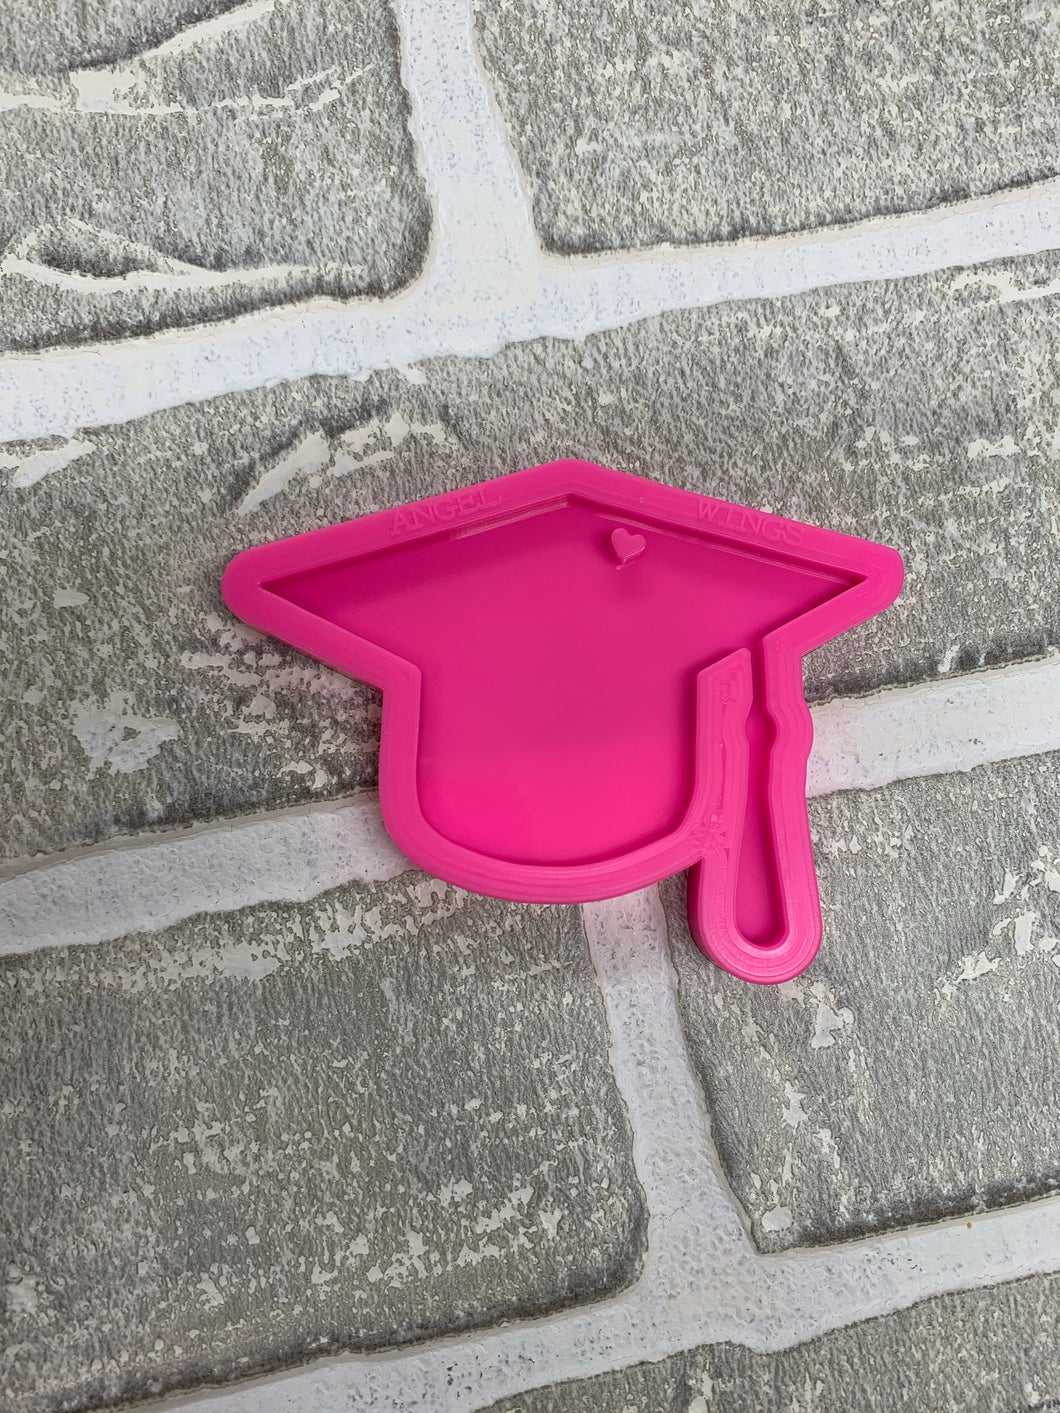 Plain graduation cap mold